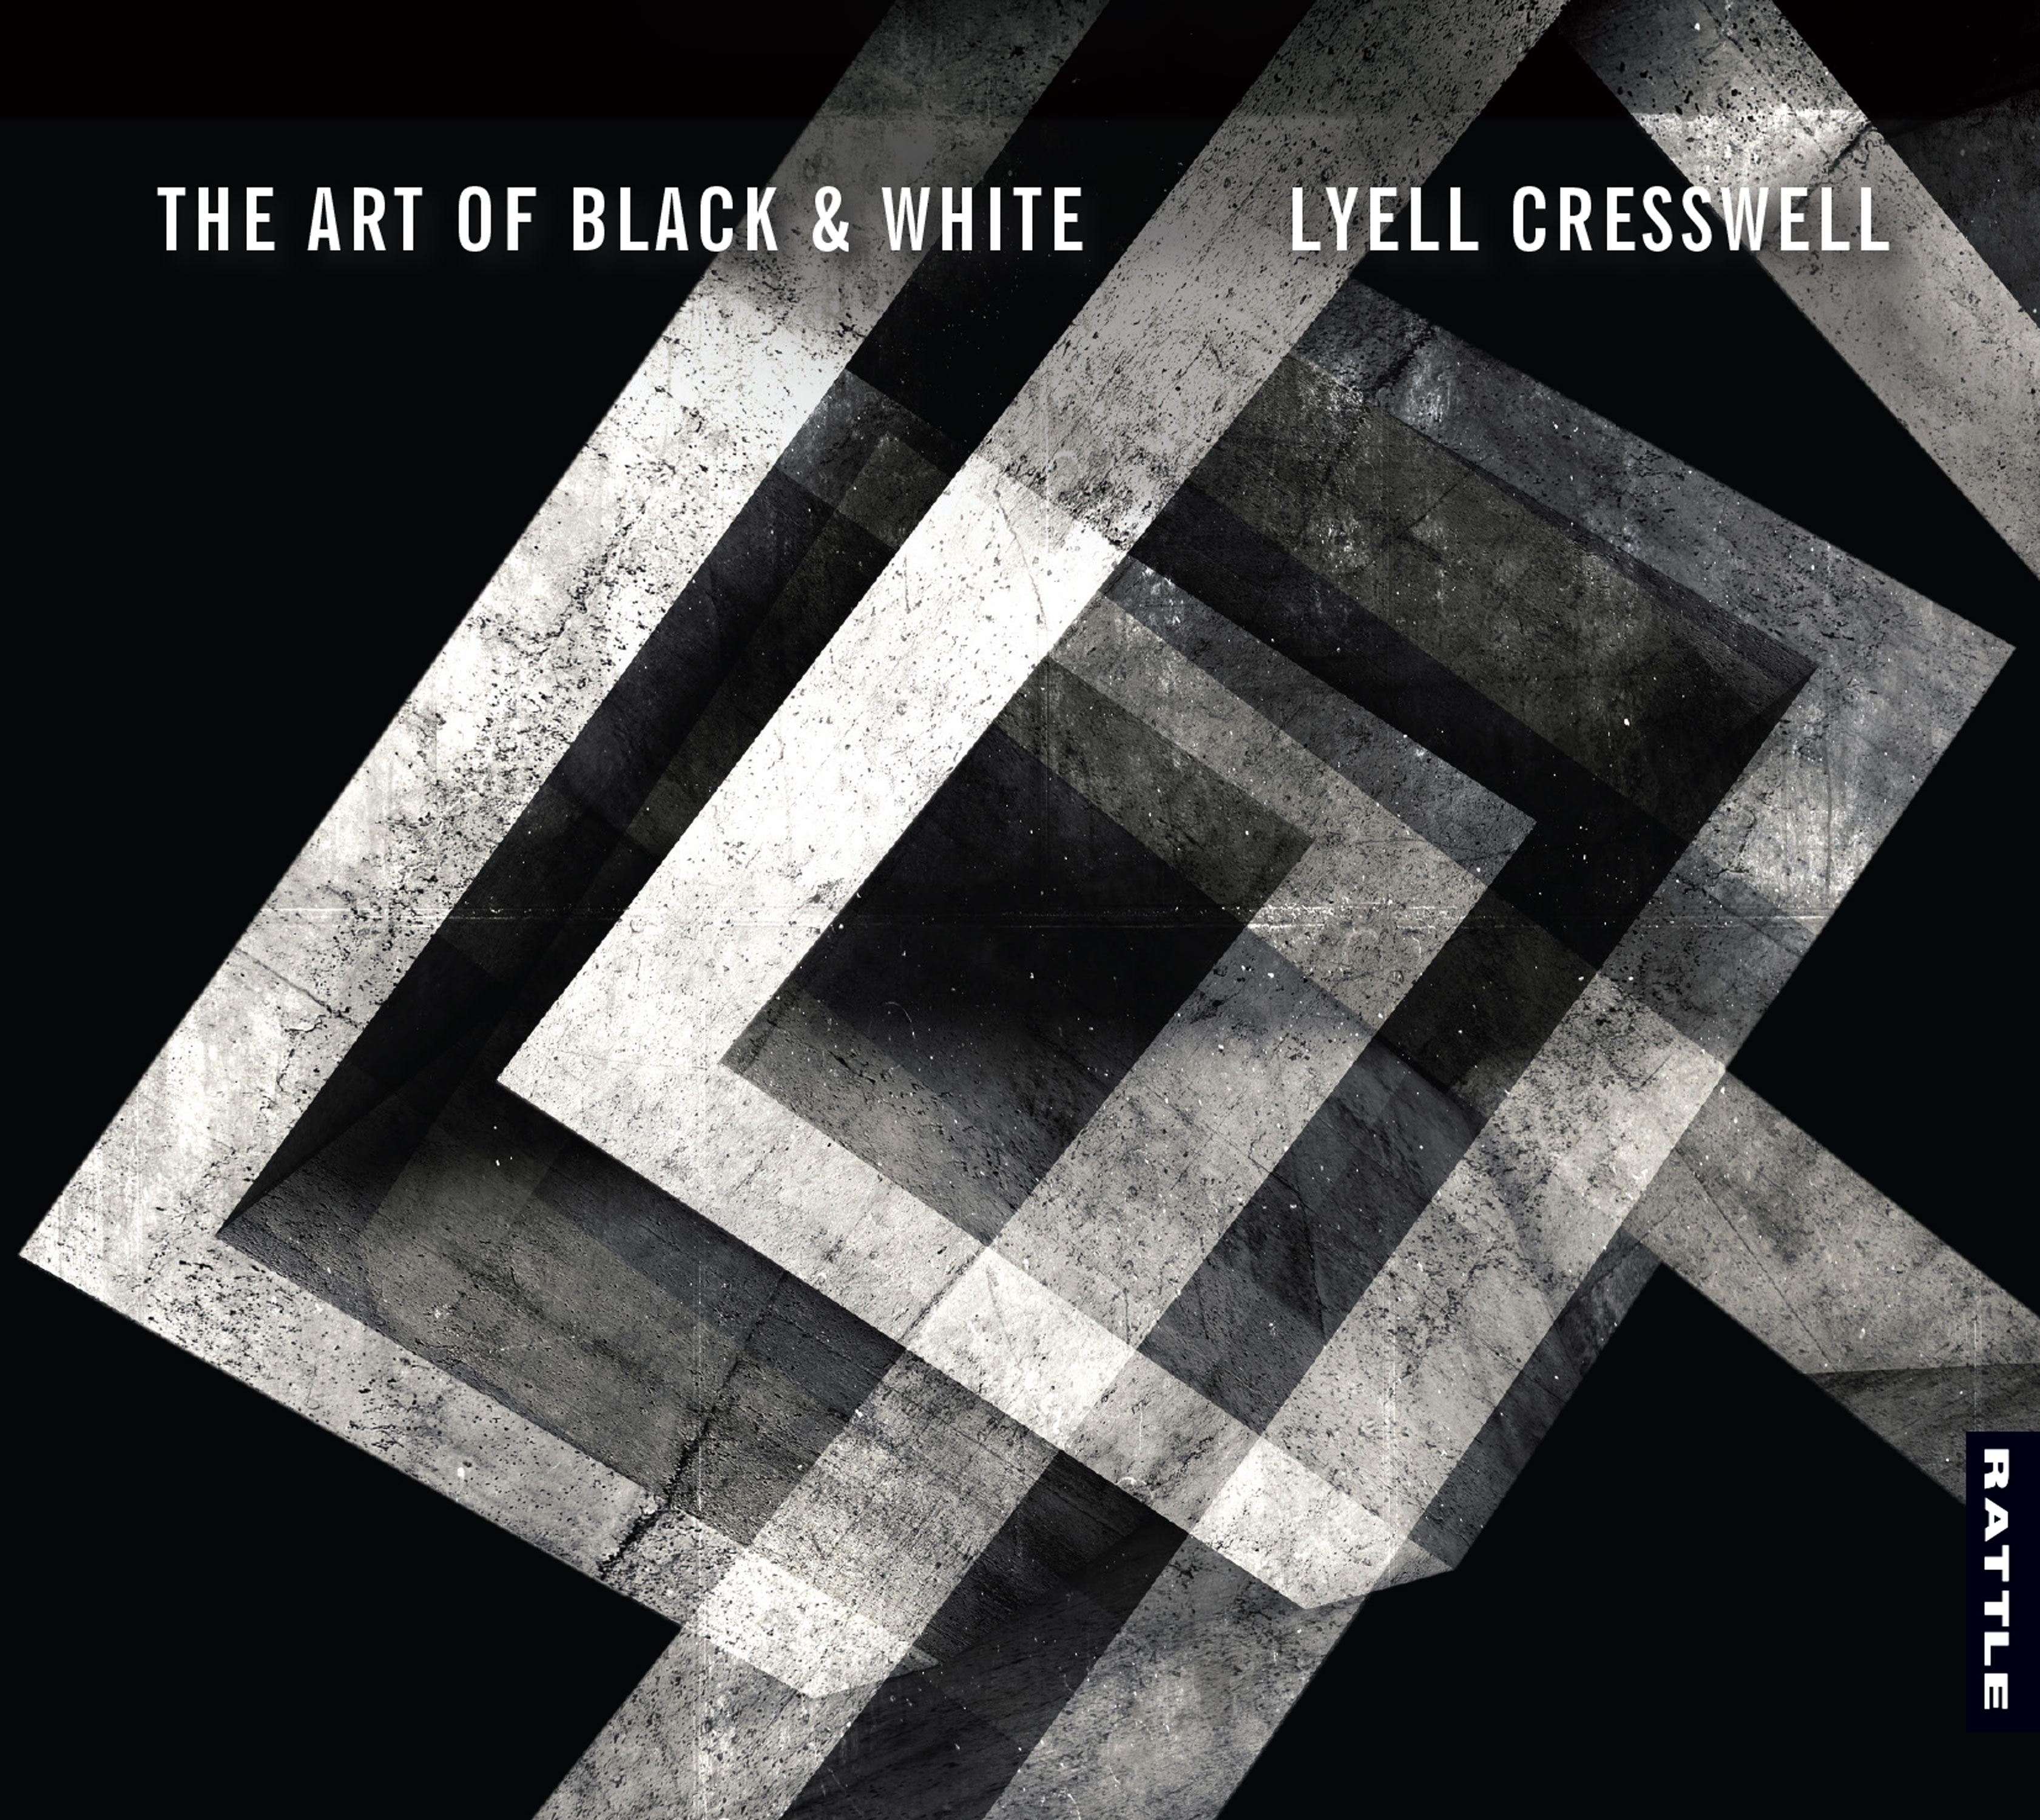 Lyell Cresswell | The Art of Black and White - downloadable MP3 ALBUM